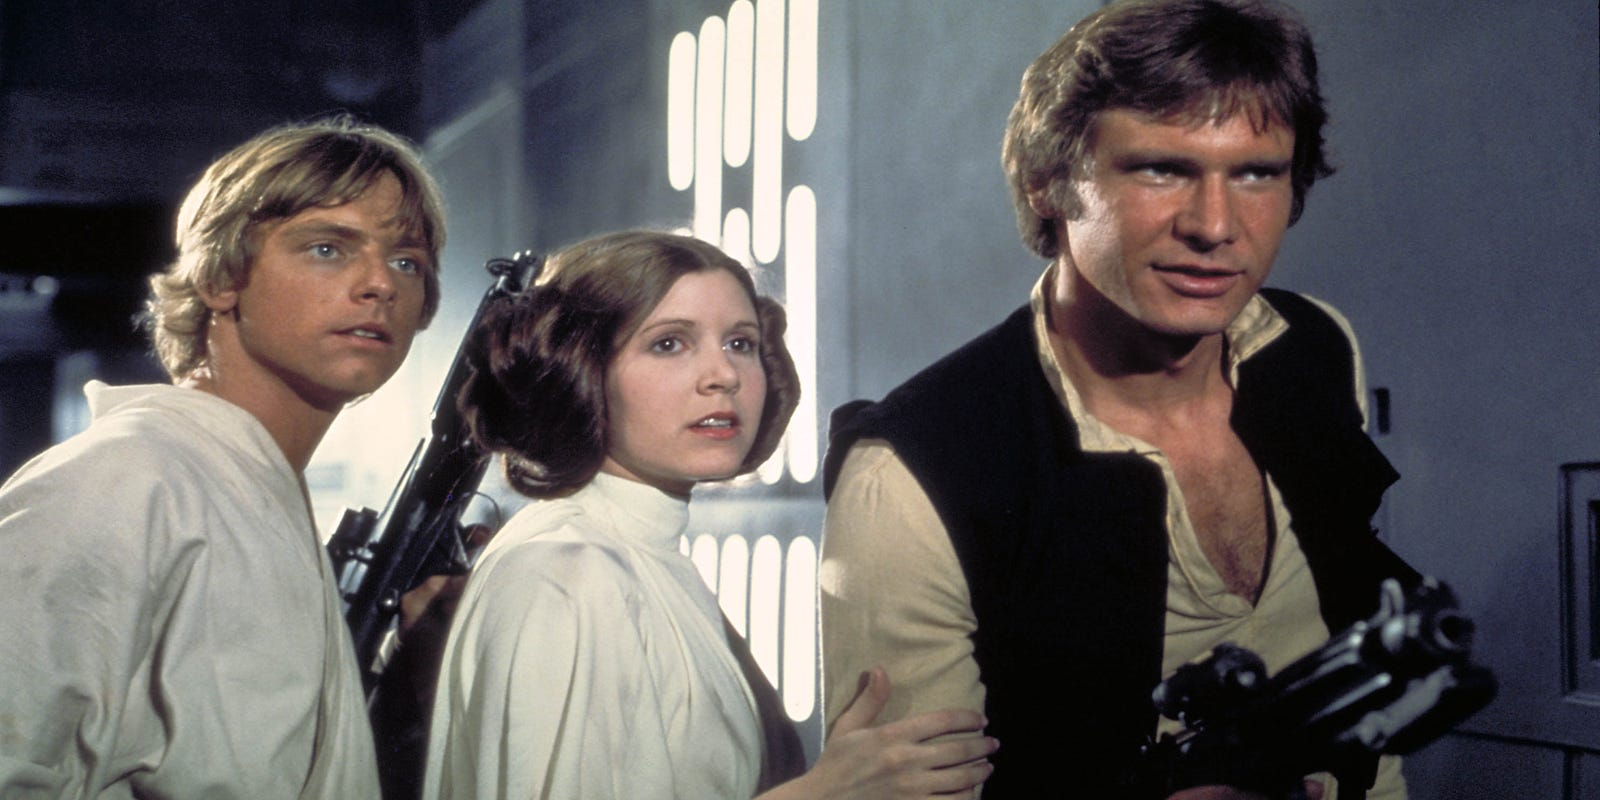 The 20 best movie series to binge during quarantine (including 'Star Wars,' of course)